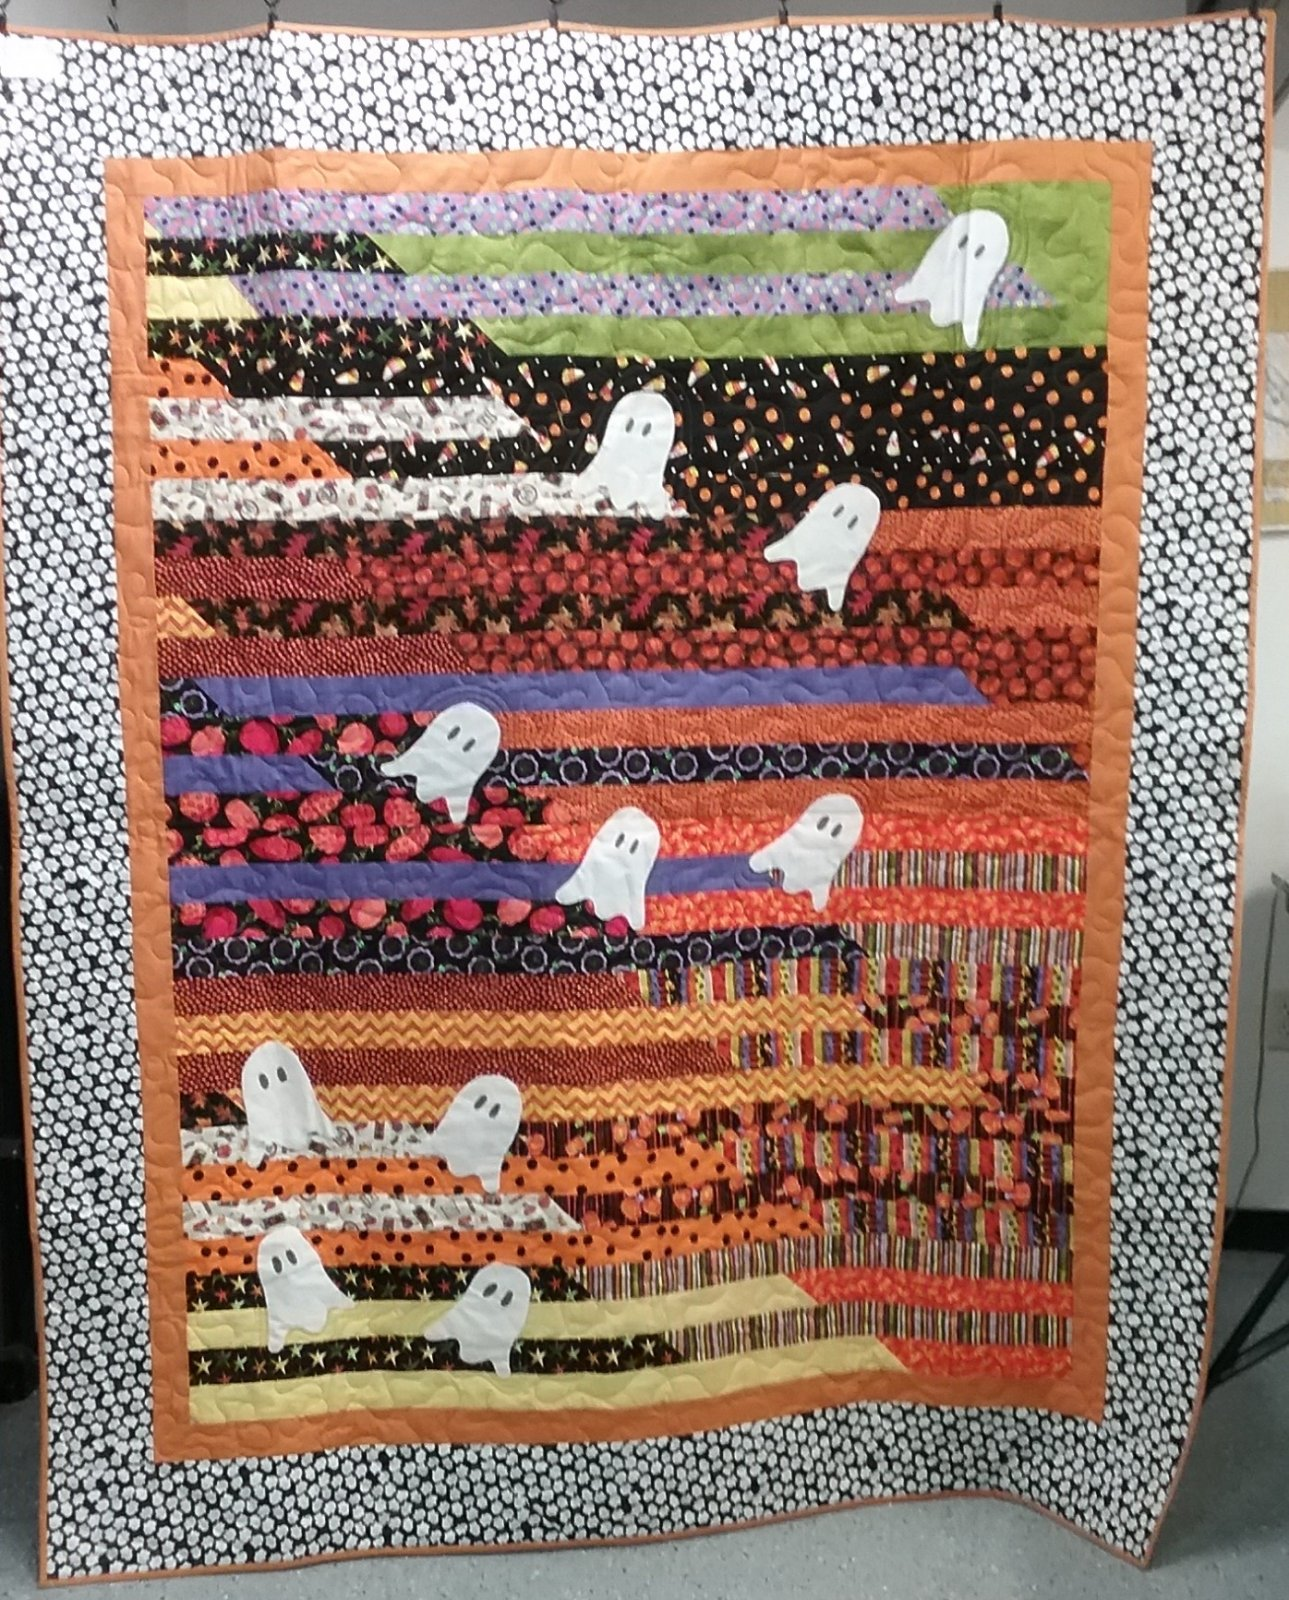 Boo! Finished Quilt